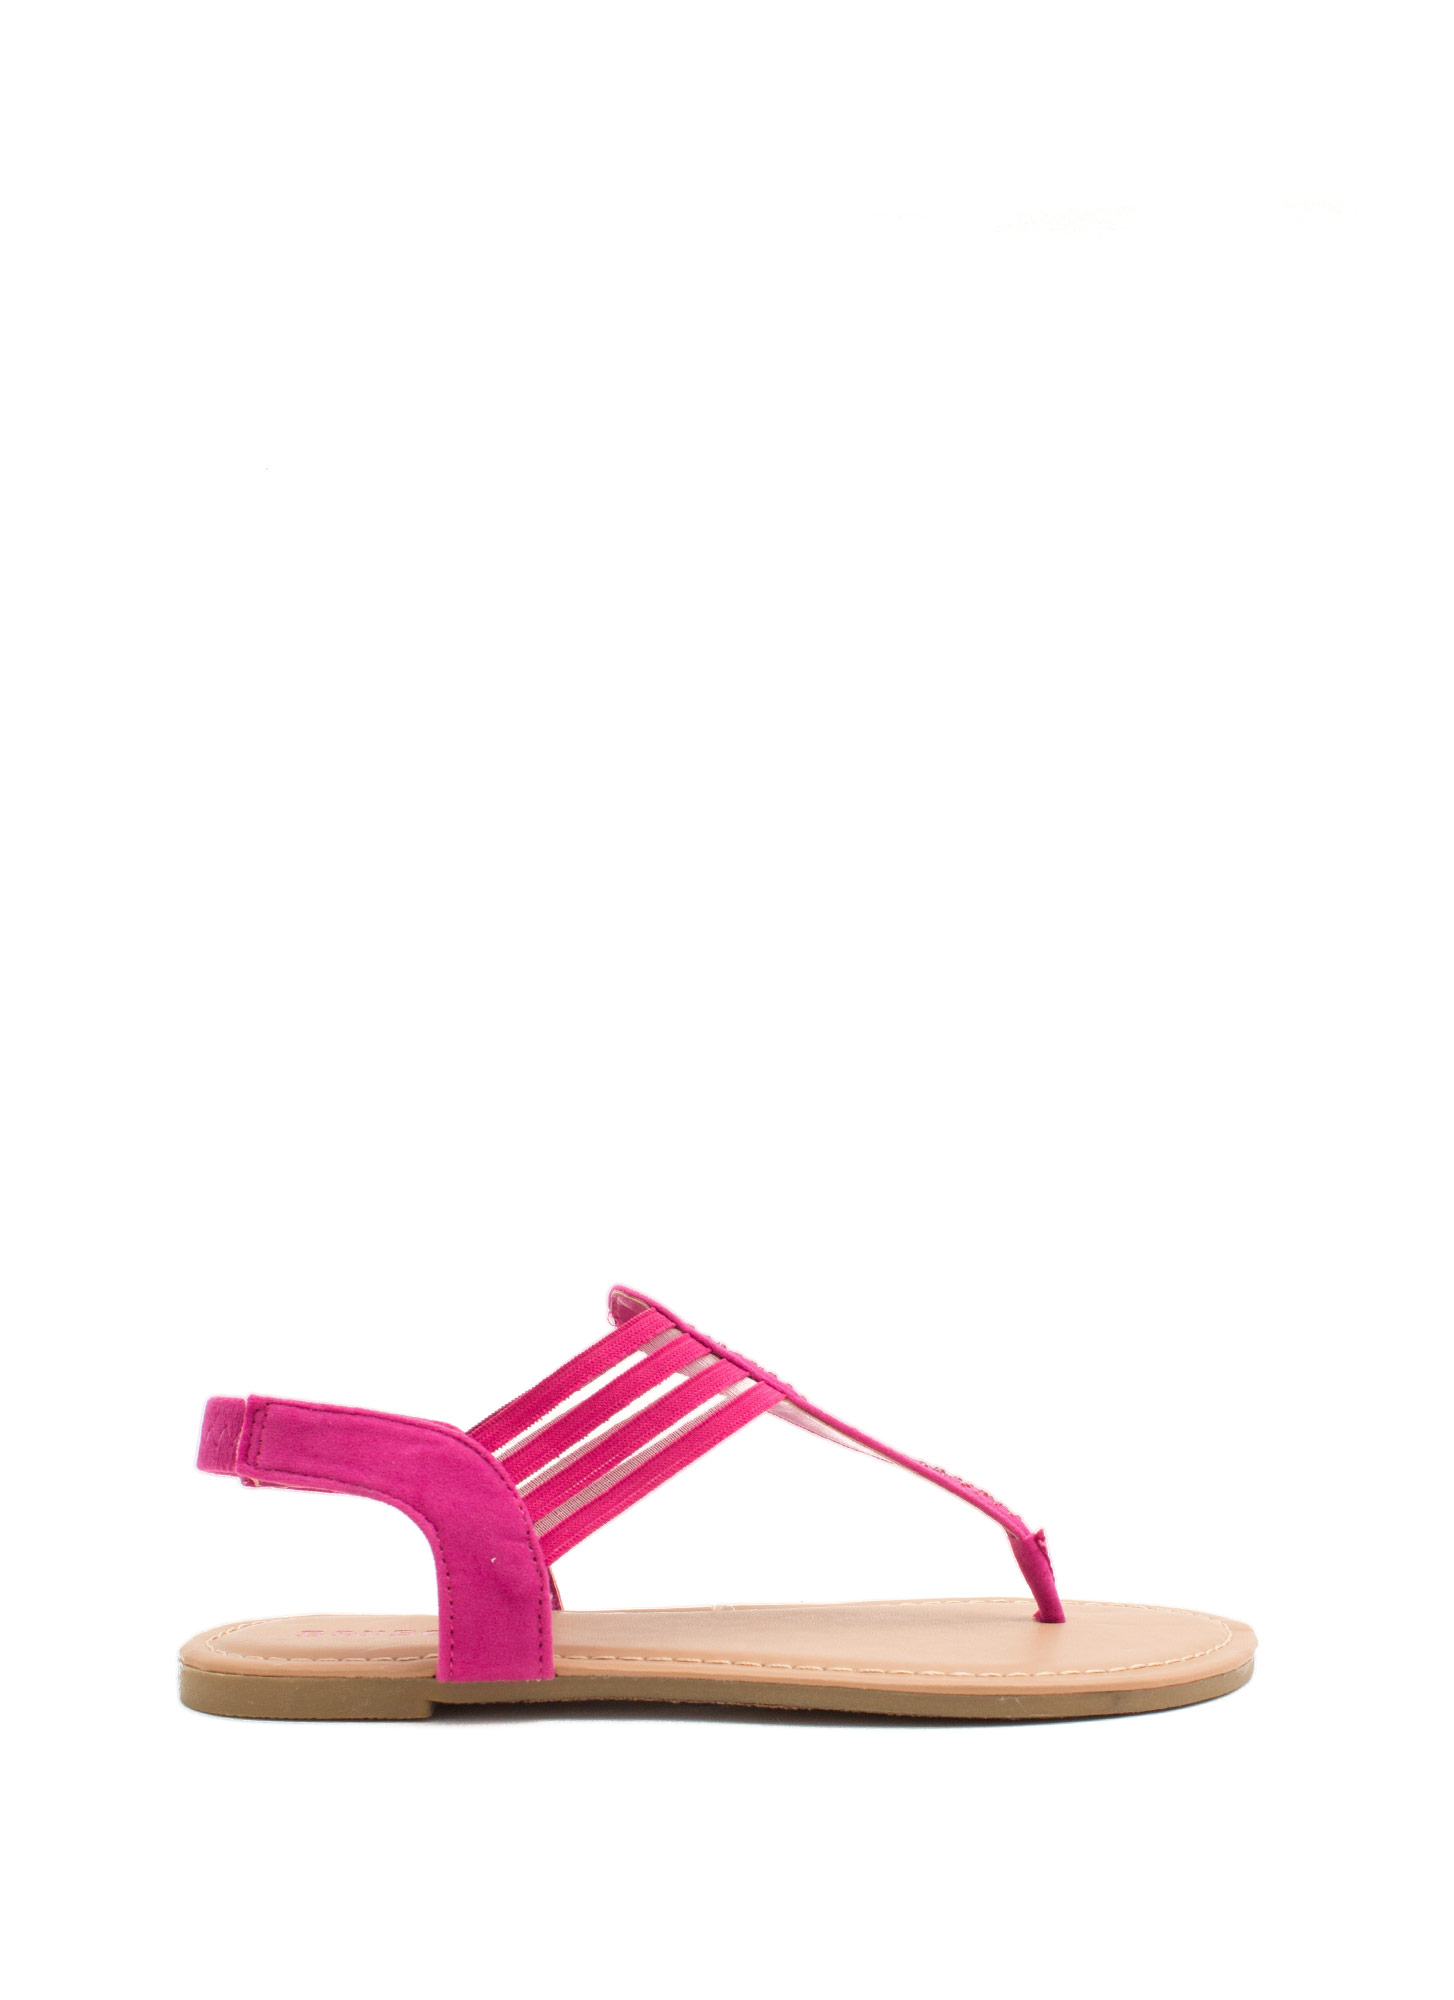 Mesh 'N Shine Thong Sandals FUCHSIA